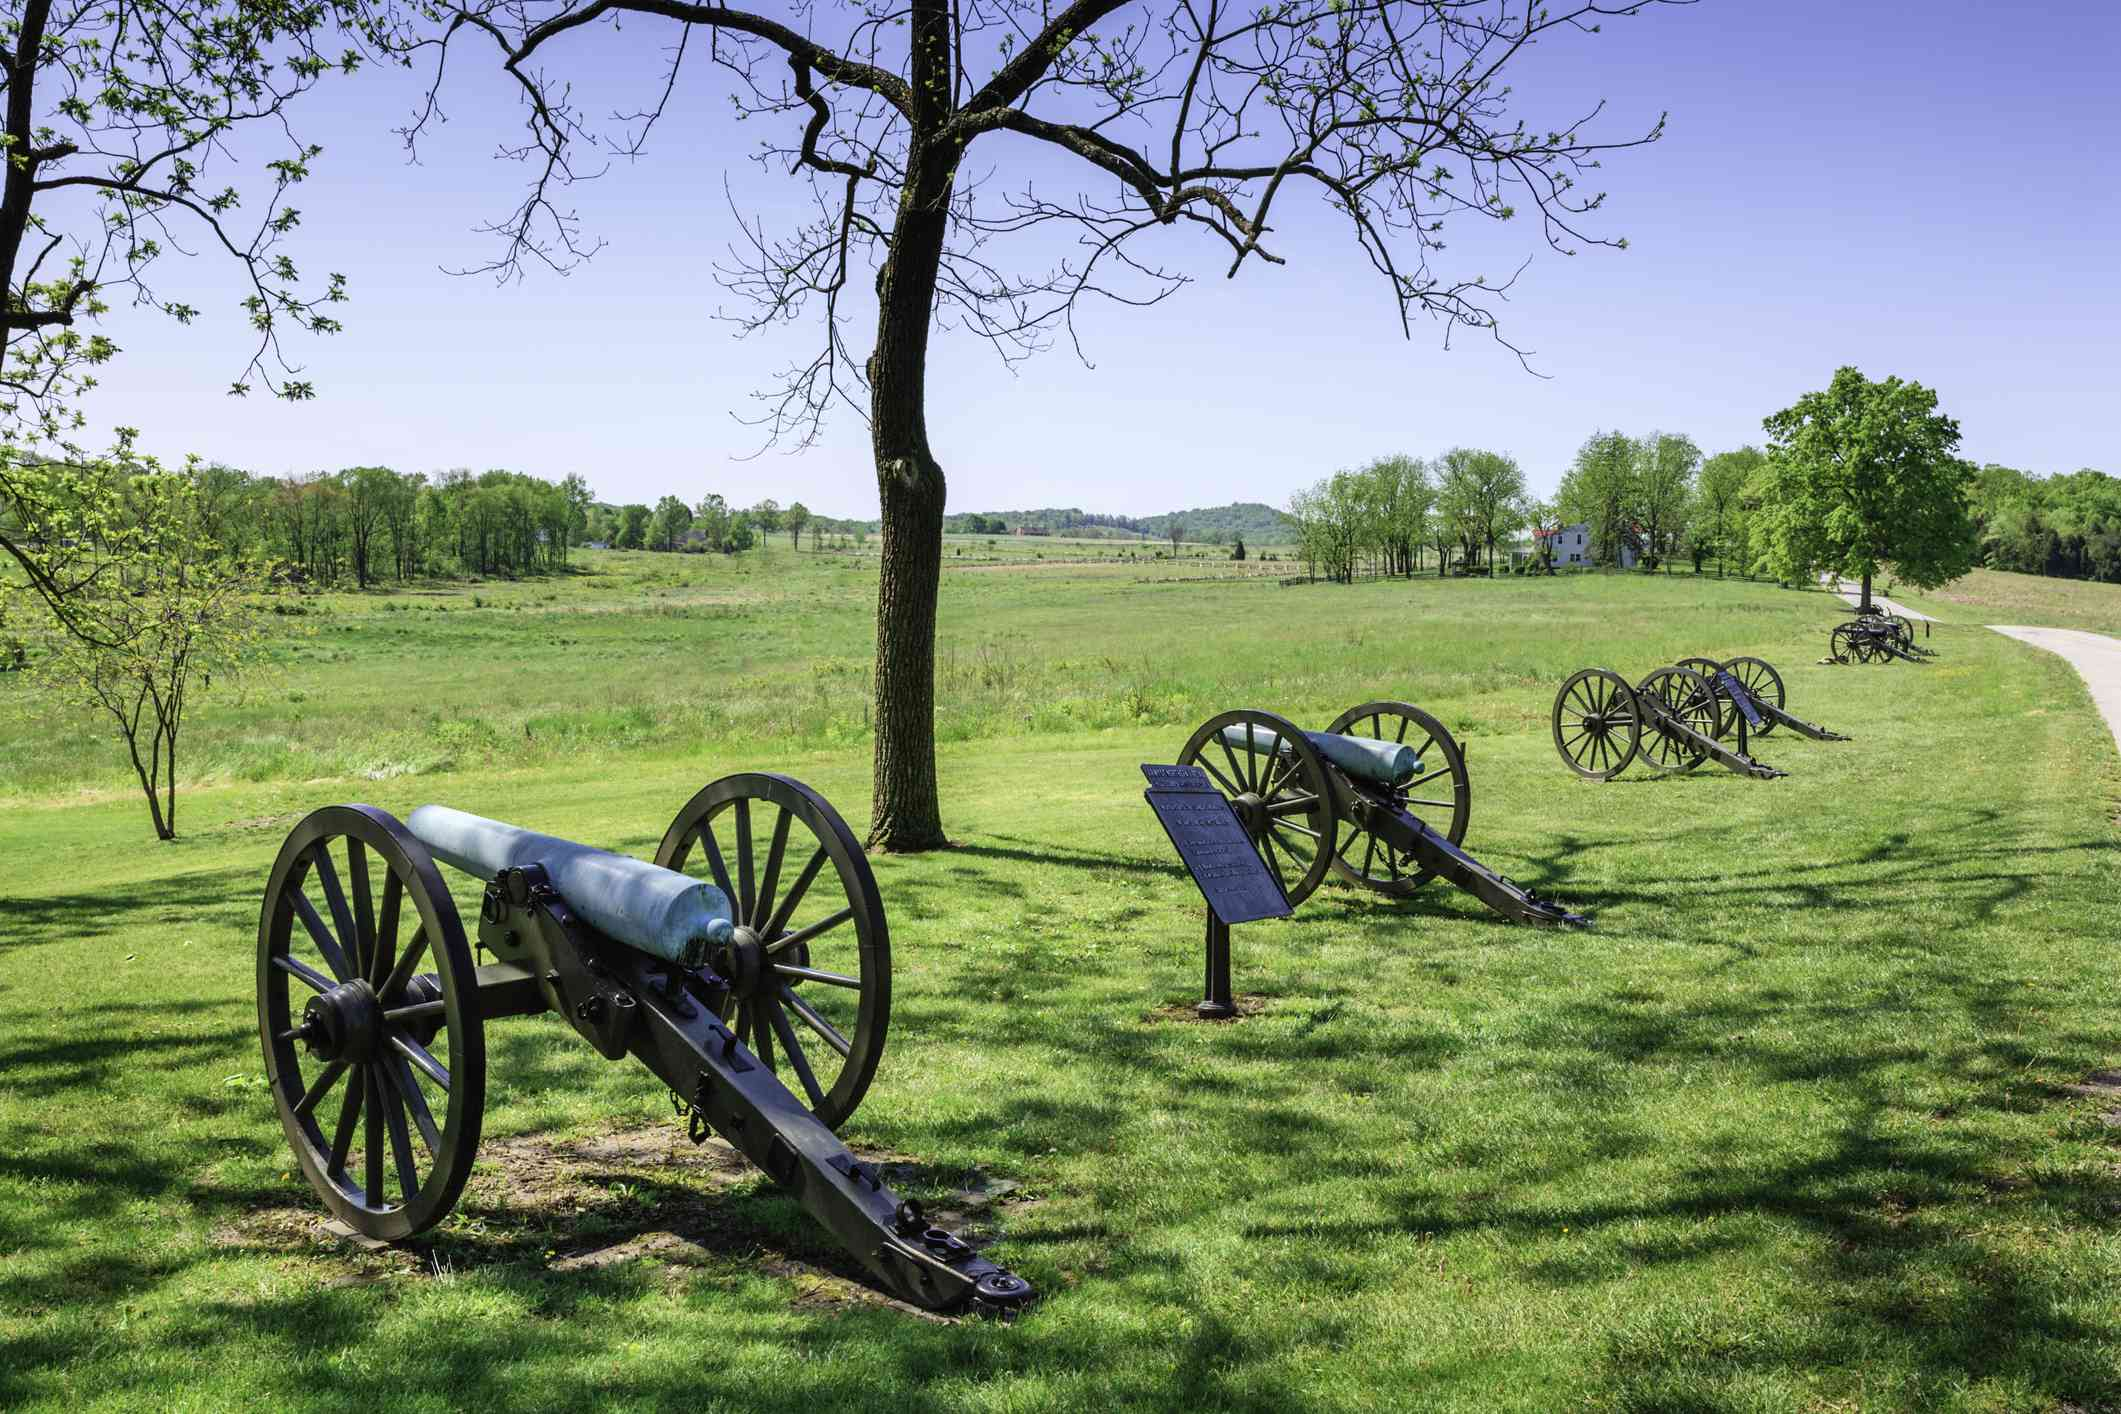 Cannons at Gettysburg, PA